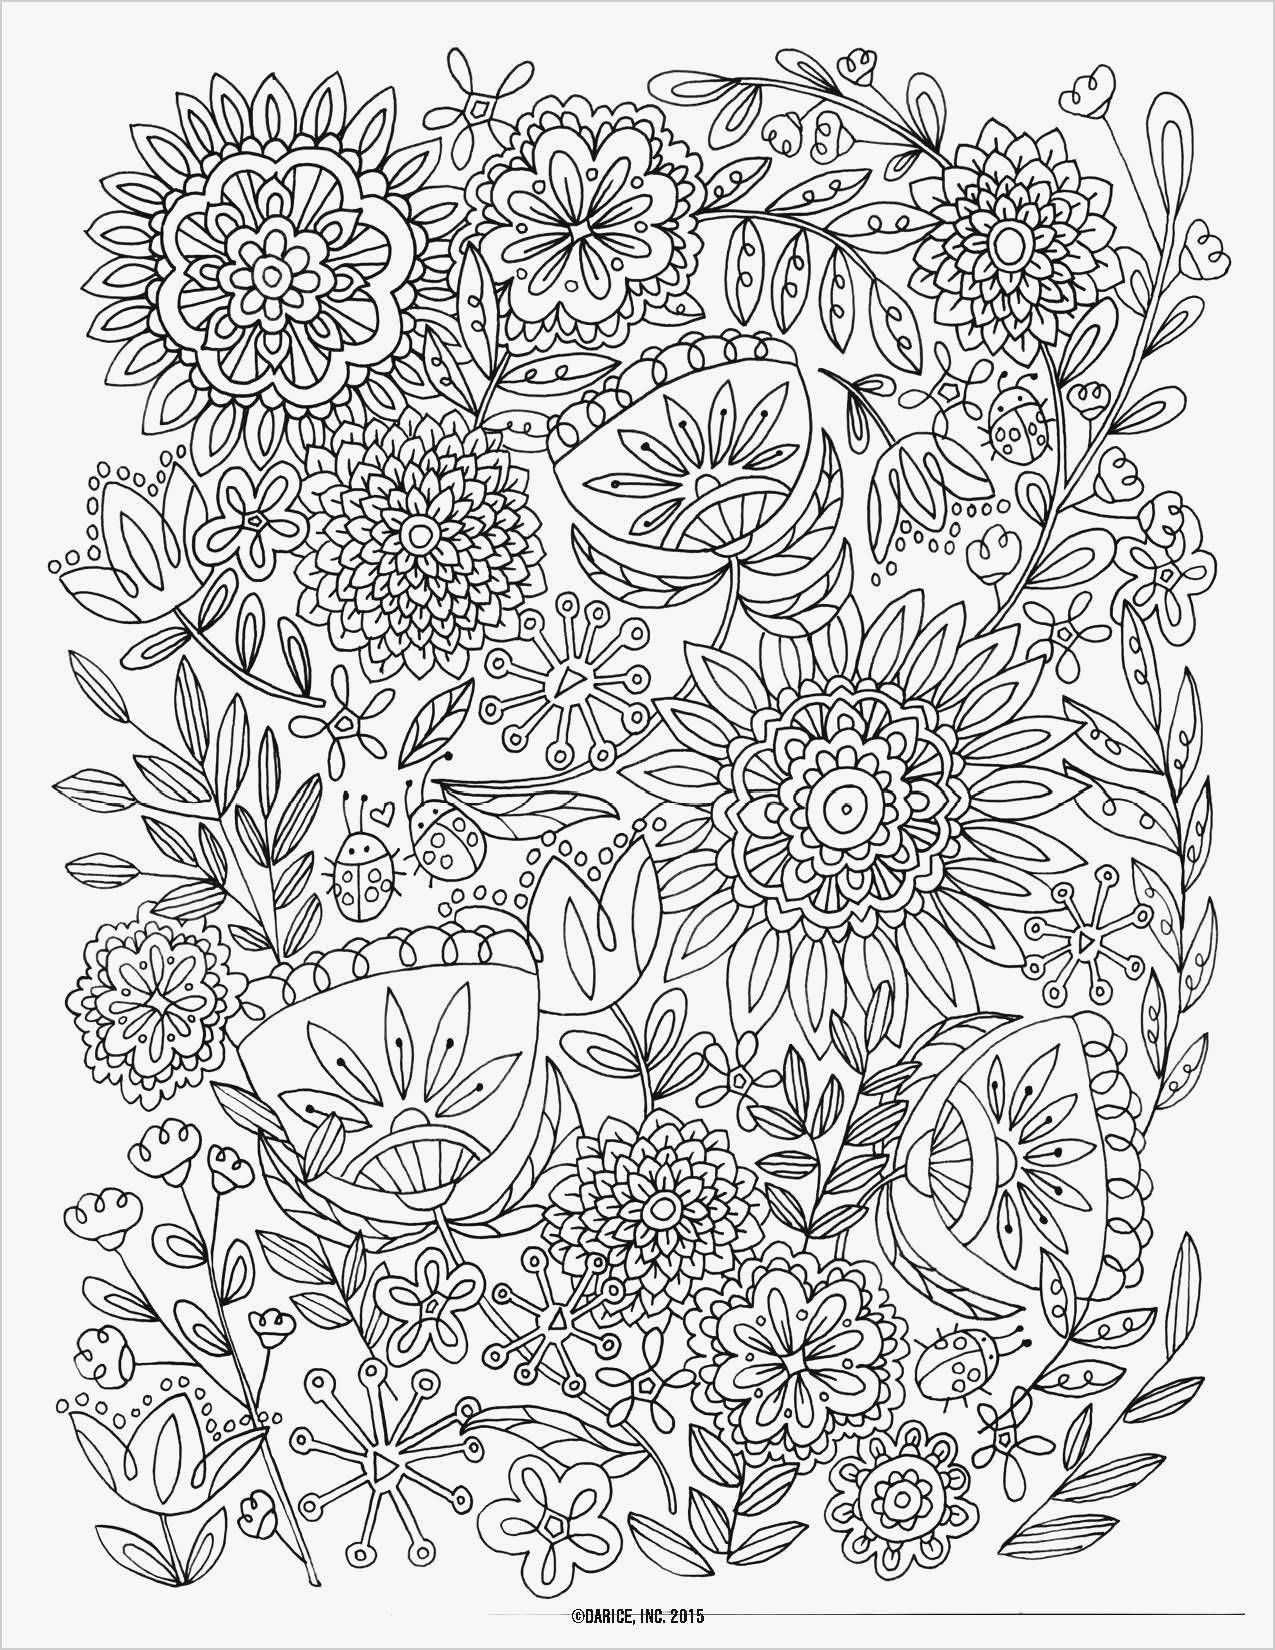 fall flowers coloring pages Download-Download Cool Vases Flower Vase Coloring Page 6-c